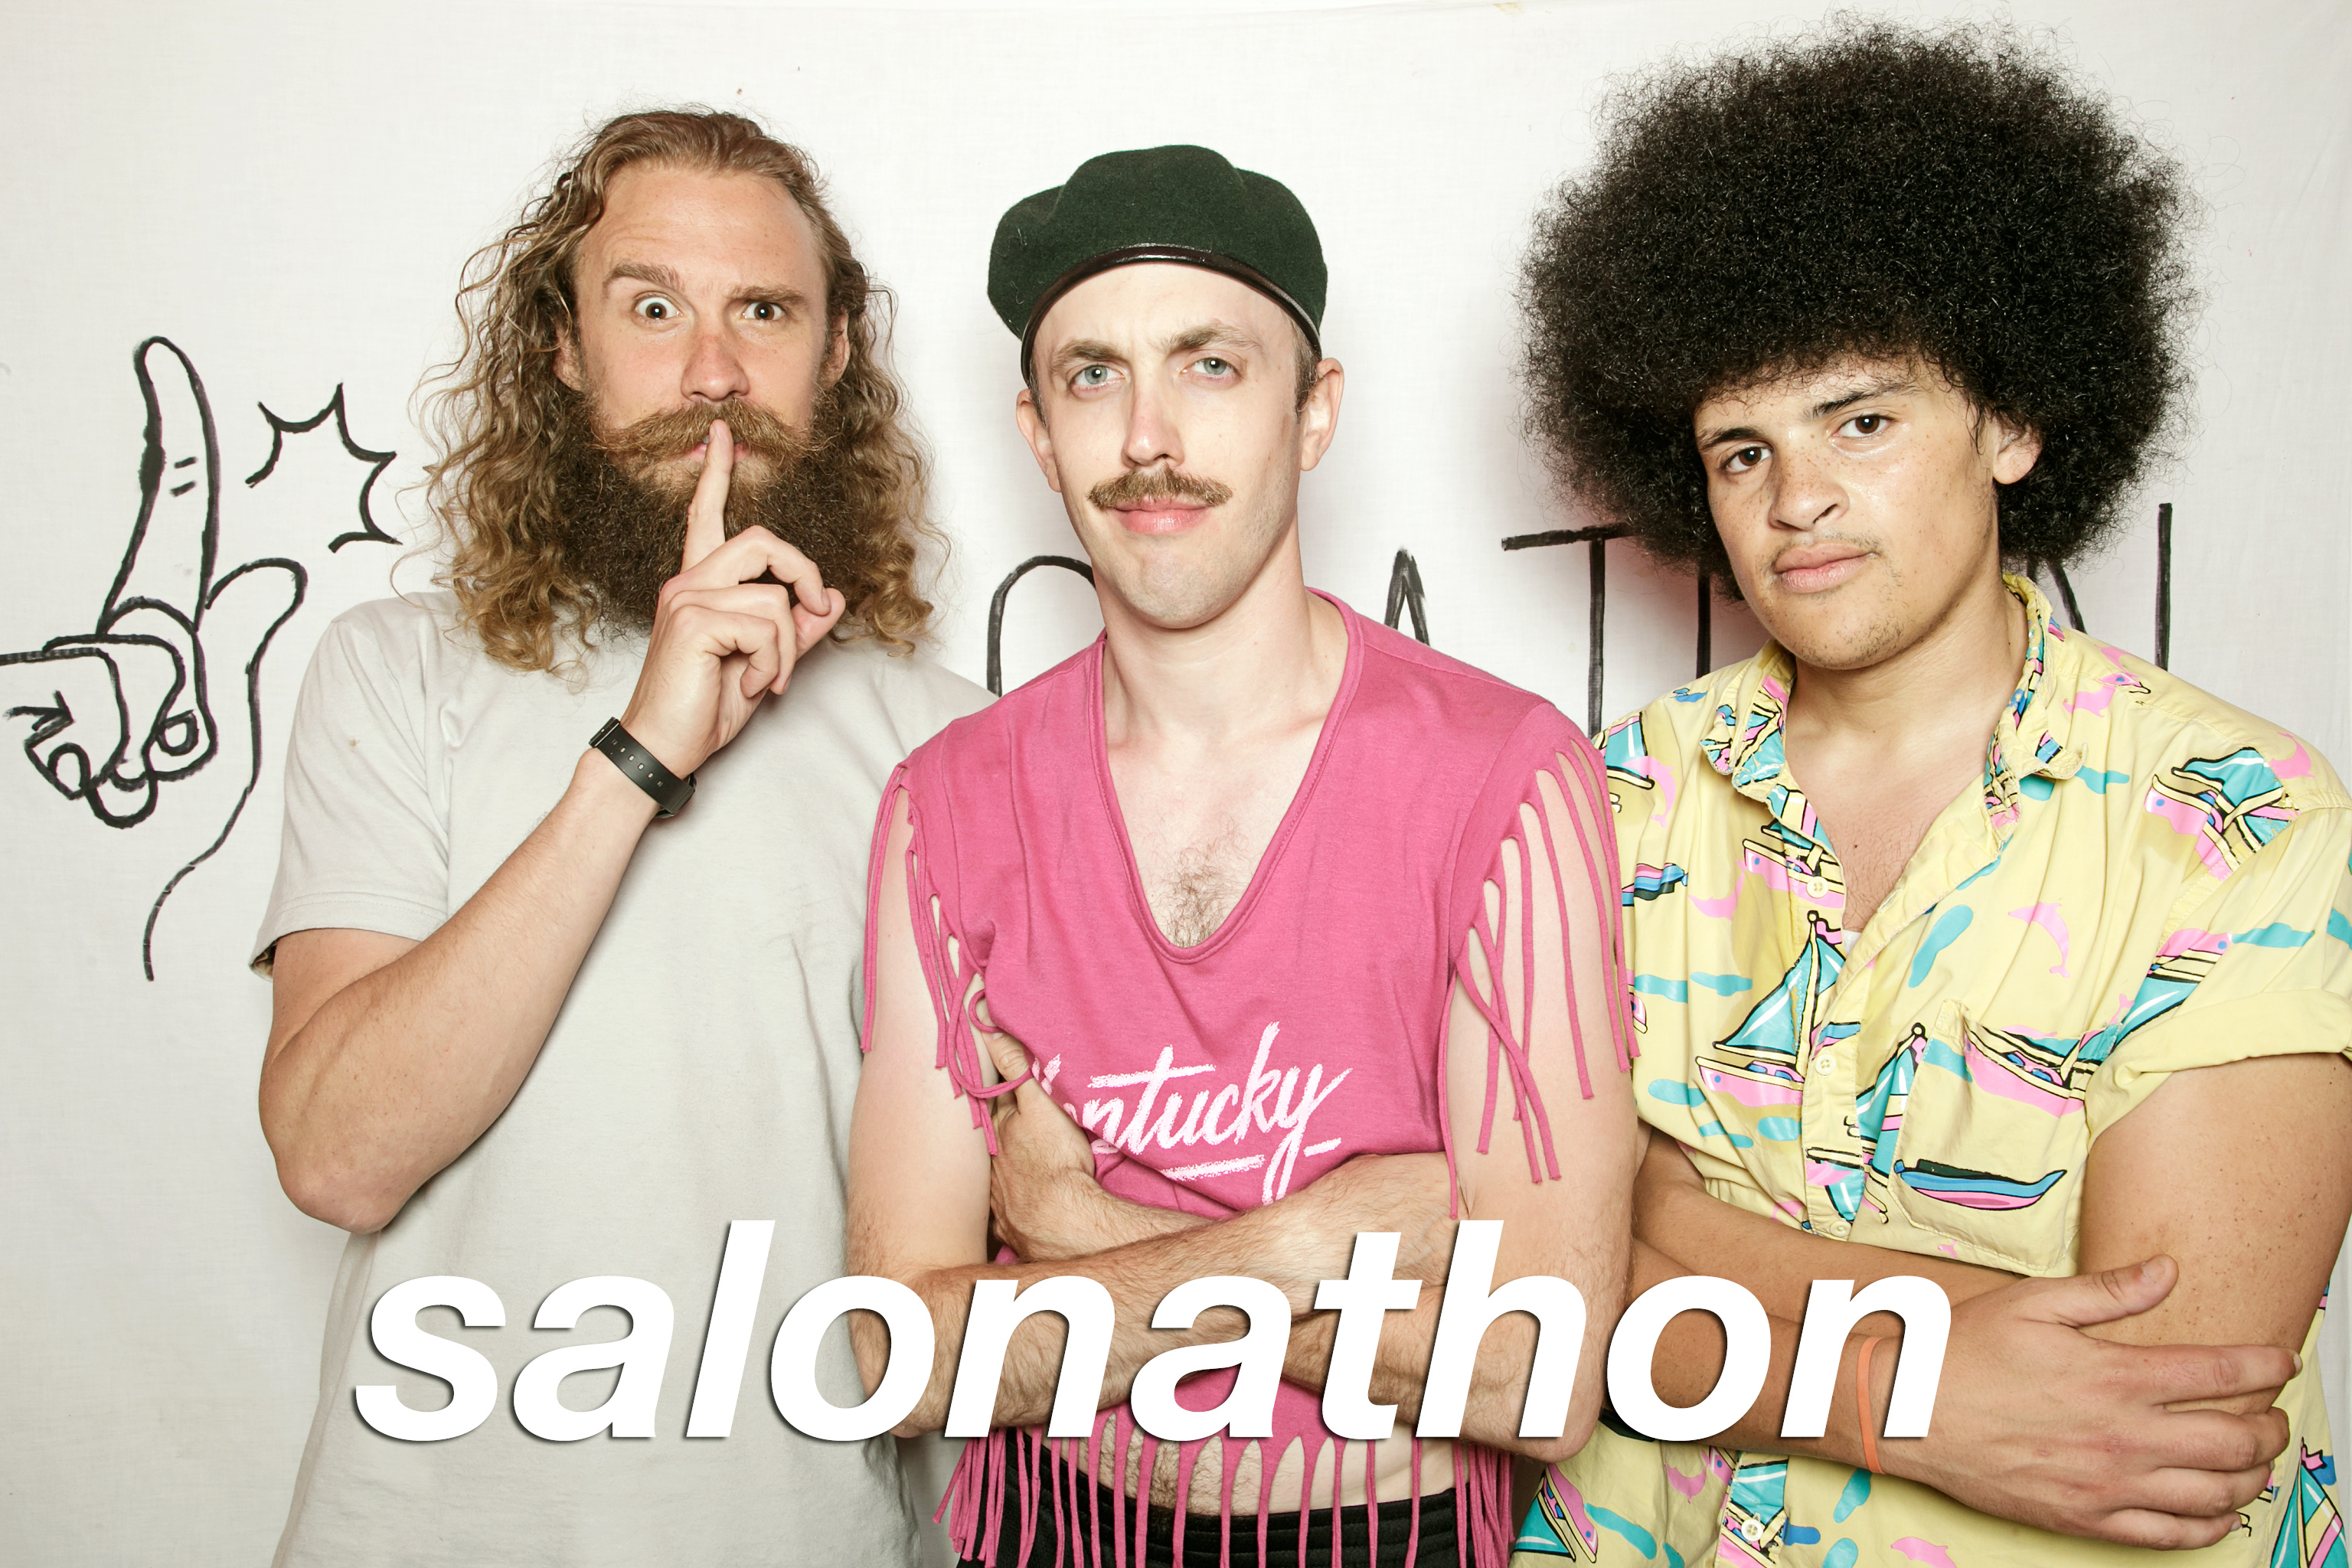 portrait booth photos from salonathons 6th anniversary, july 2017